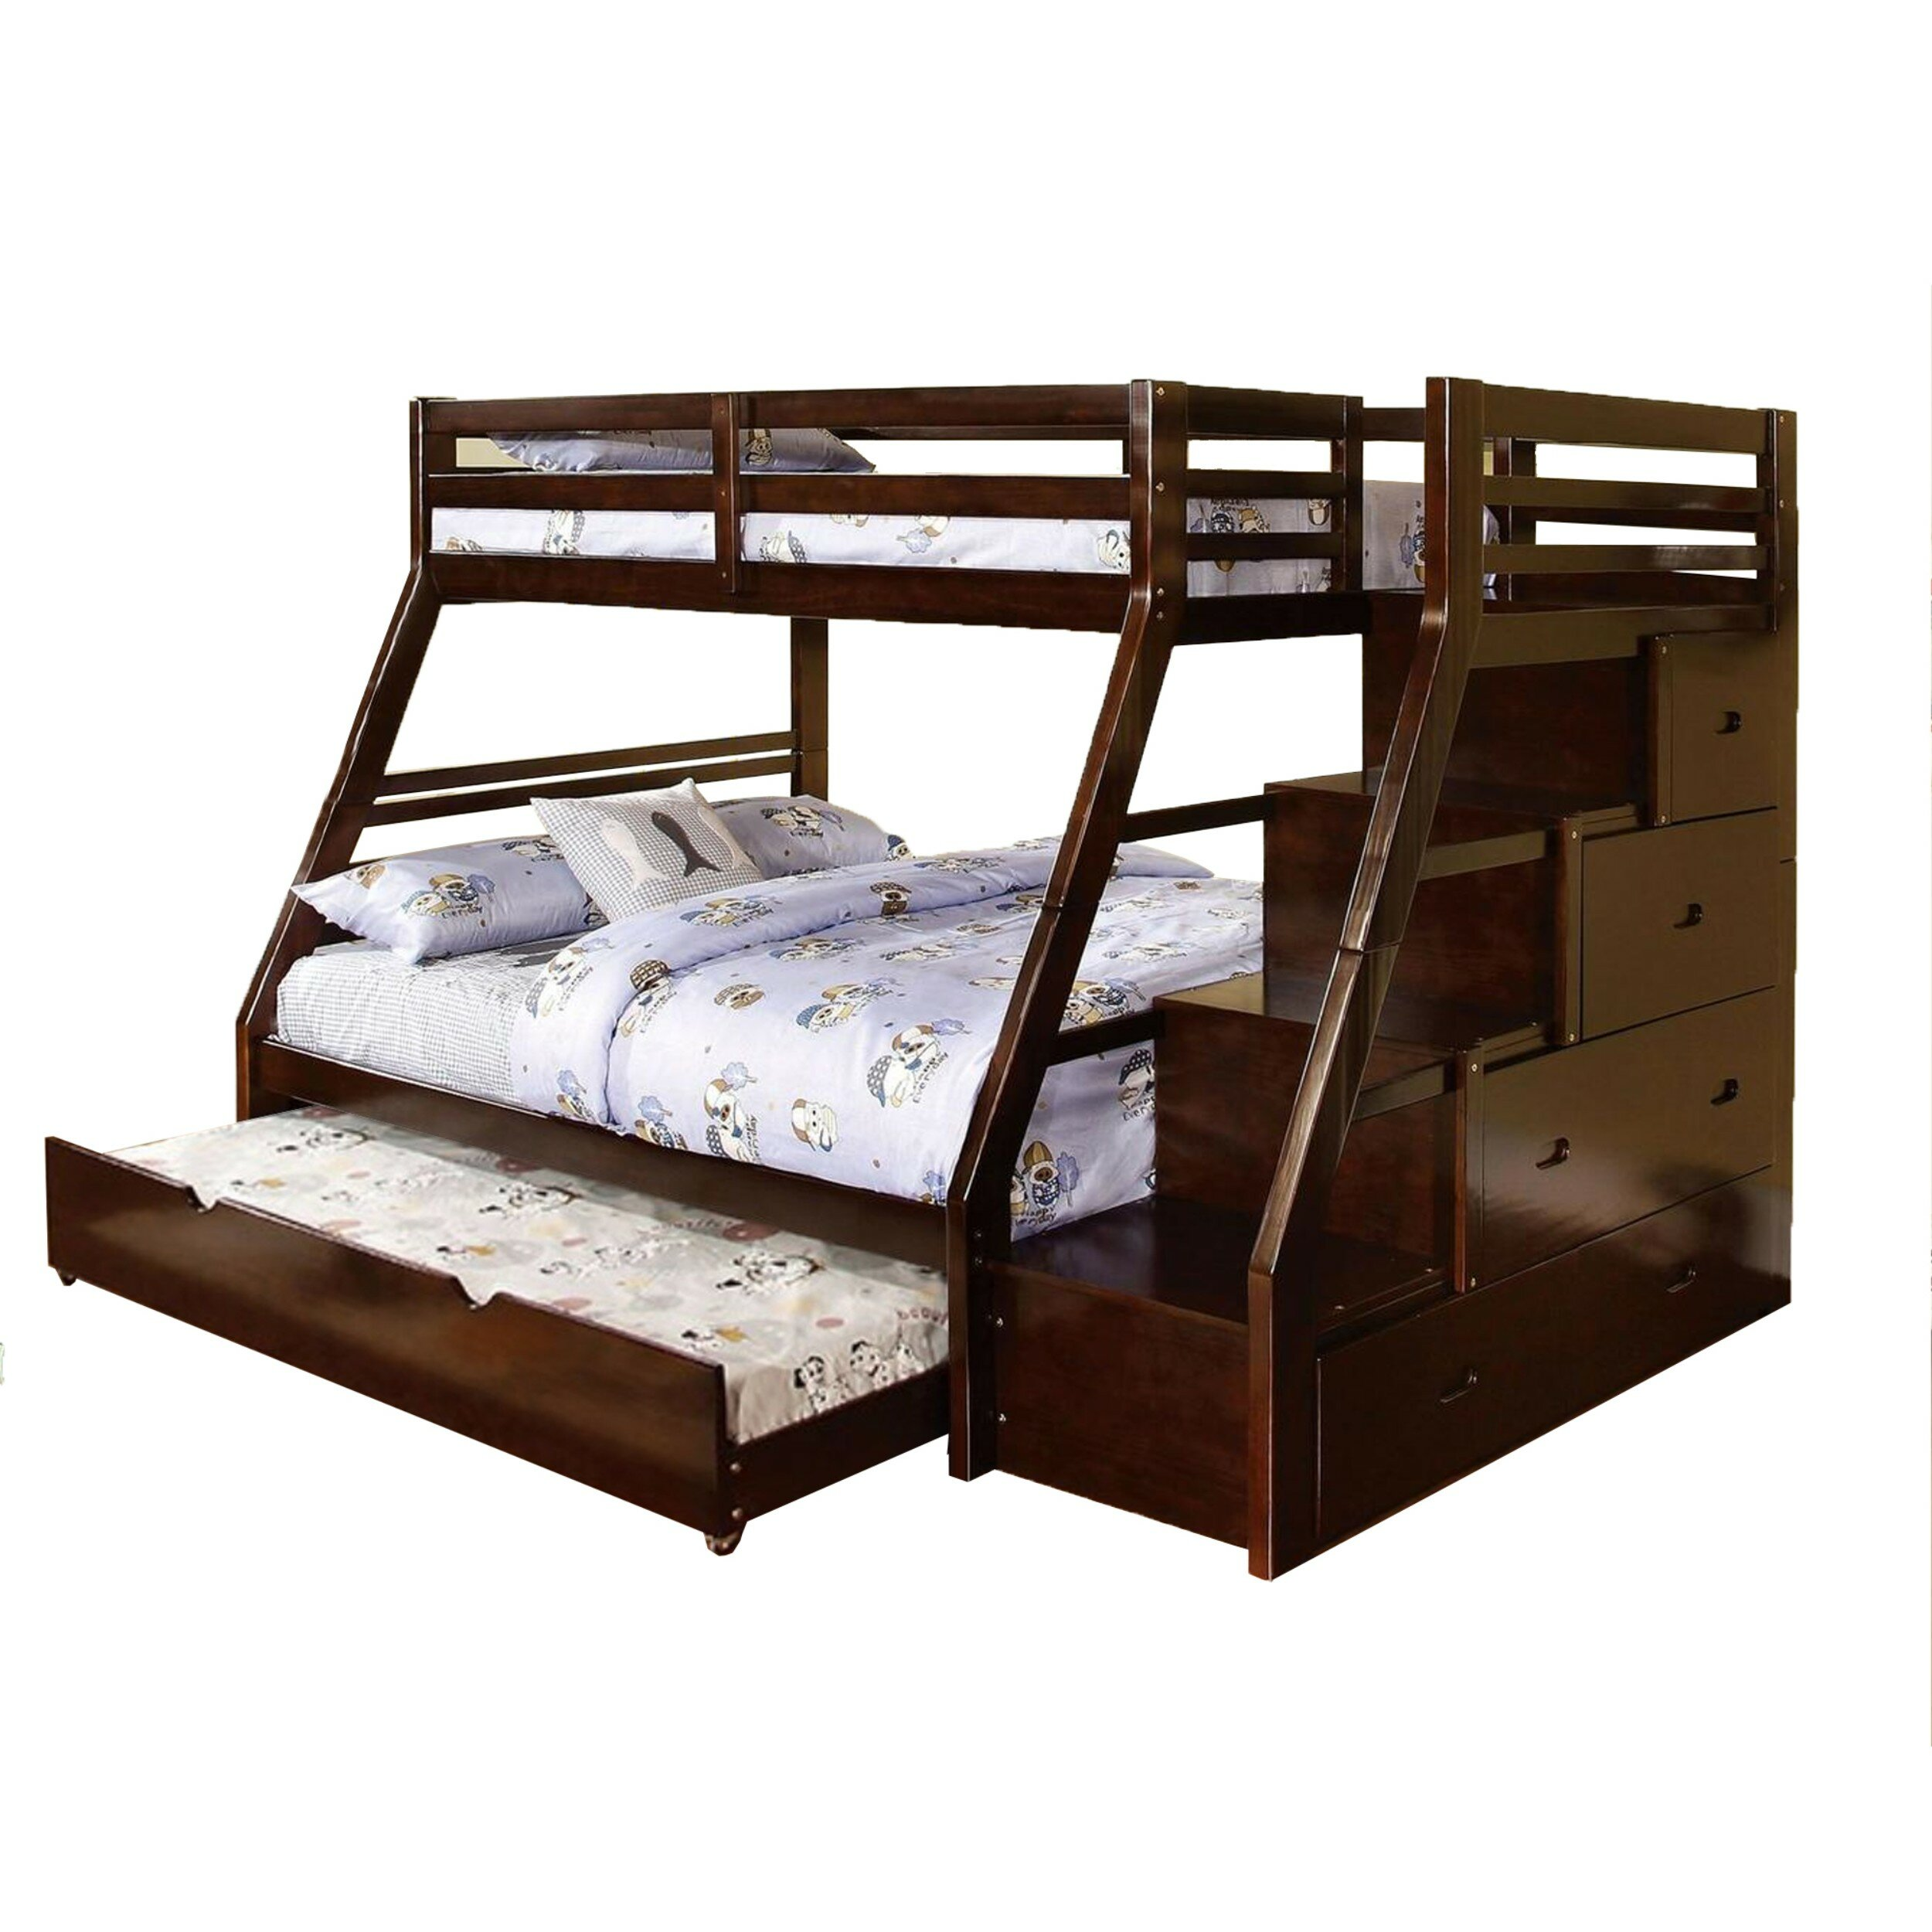 Harriet Bee Atascadero Twin Over Full Bunk Bed With Drawers